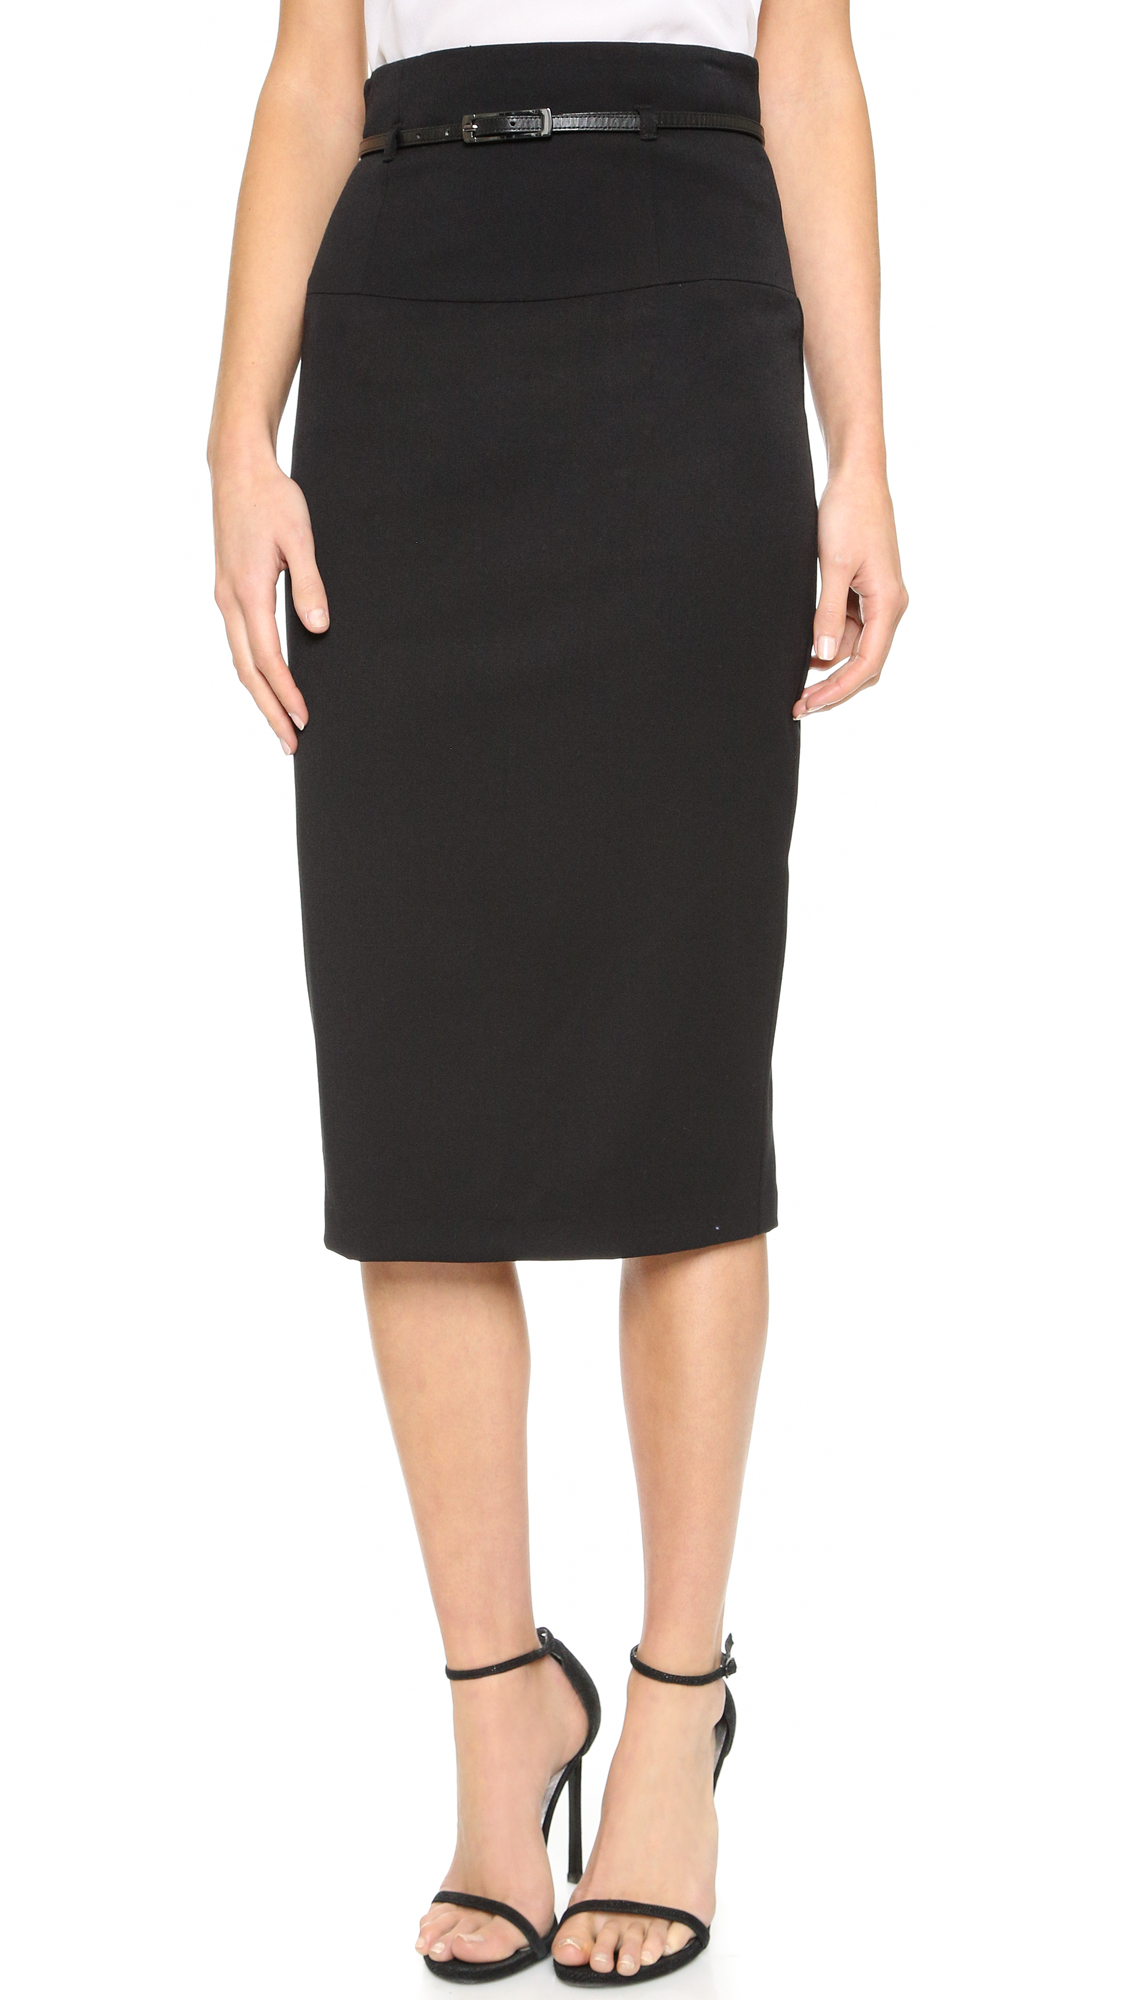 Black Halo High Waisted Pencil Skirt | 15% off first app purchase ...